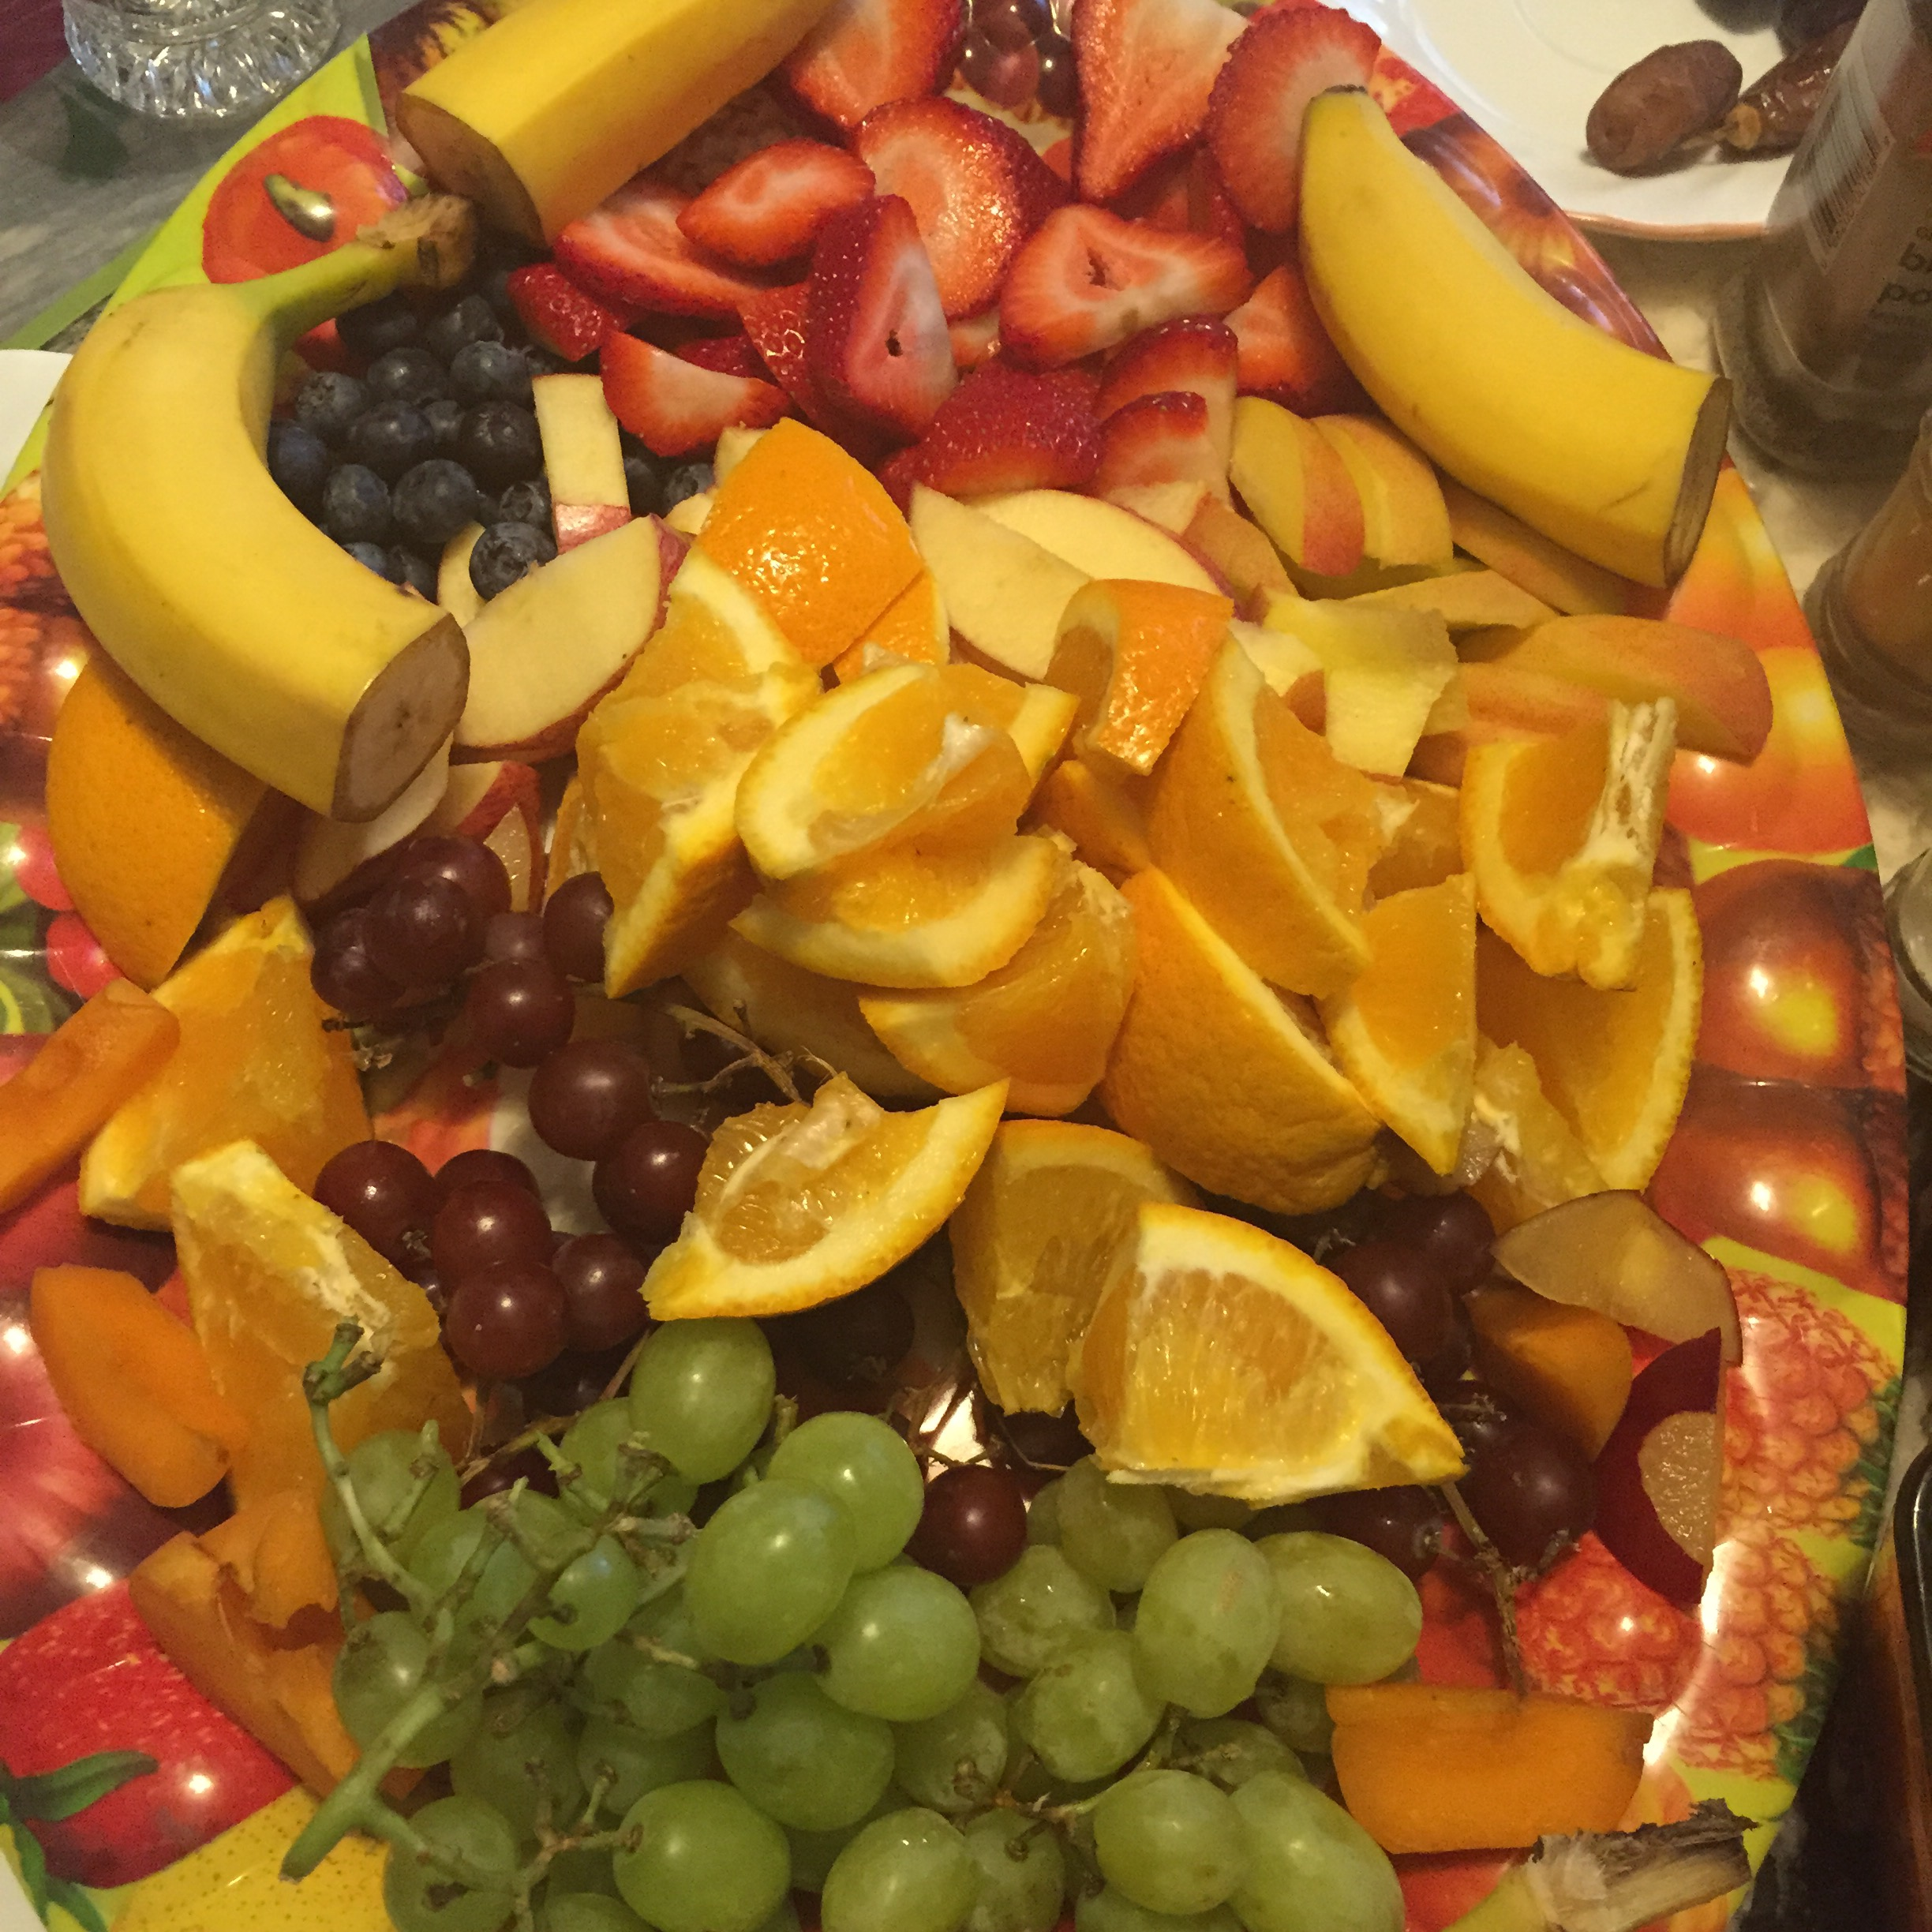 fruit platters fruits for healthy living